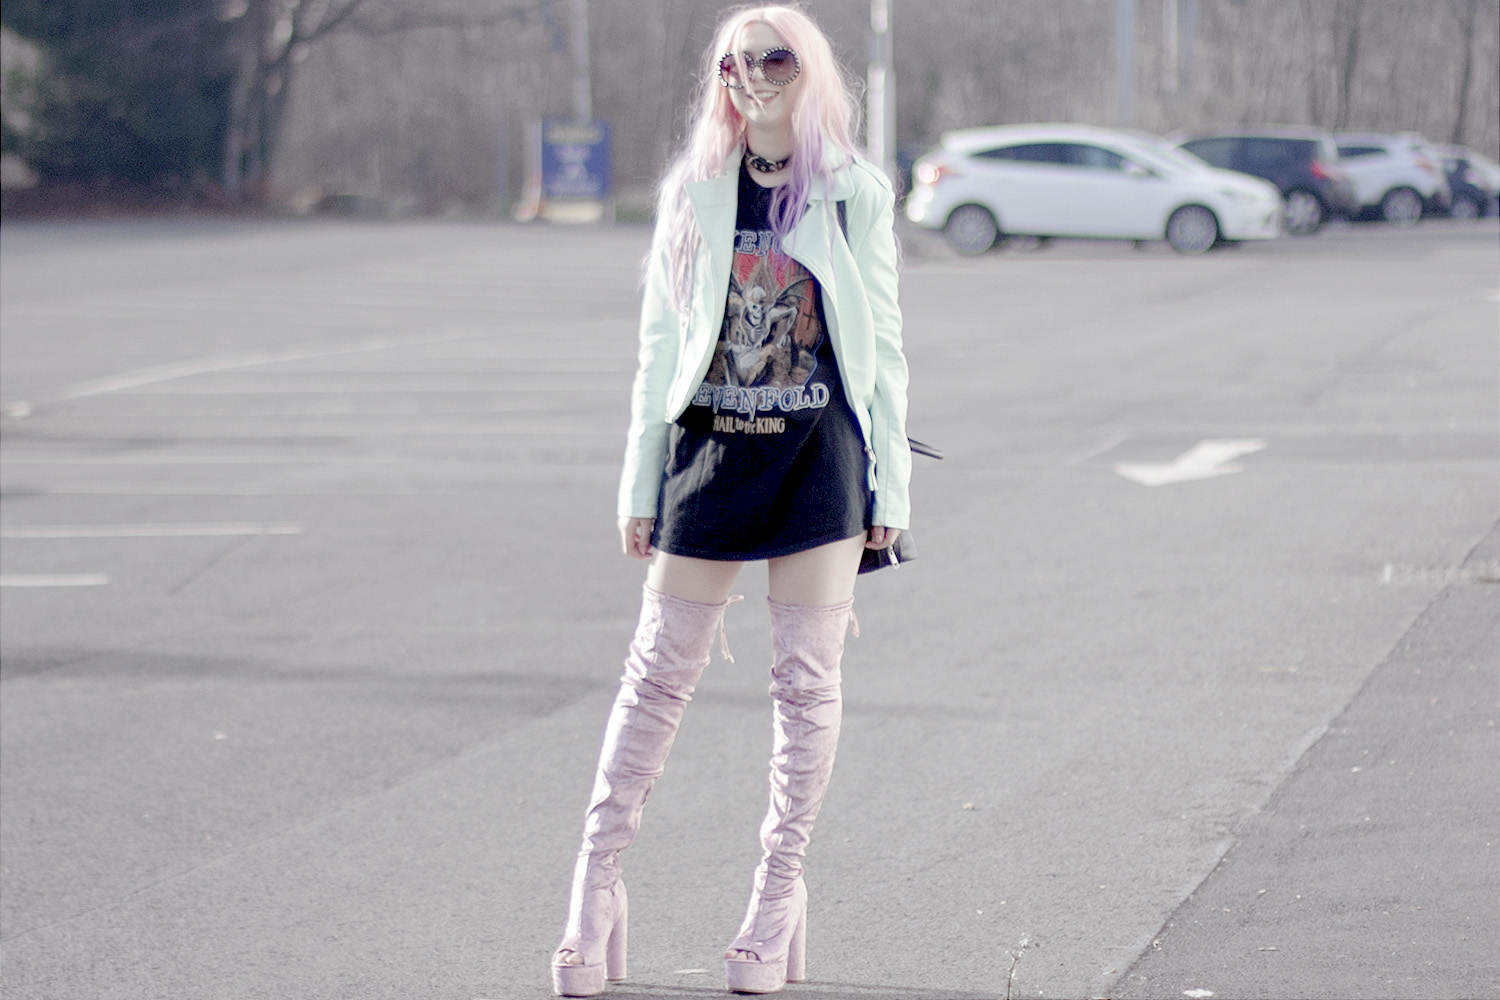 Hail to the king tshirt, cat bag, band tee blogger, velvet boots, turquoise leather jacket